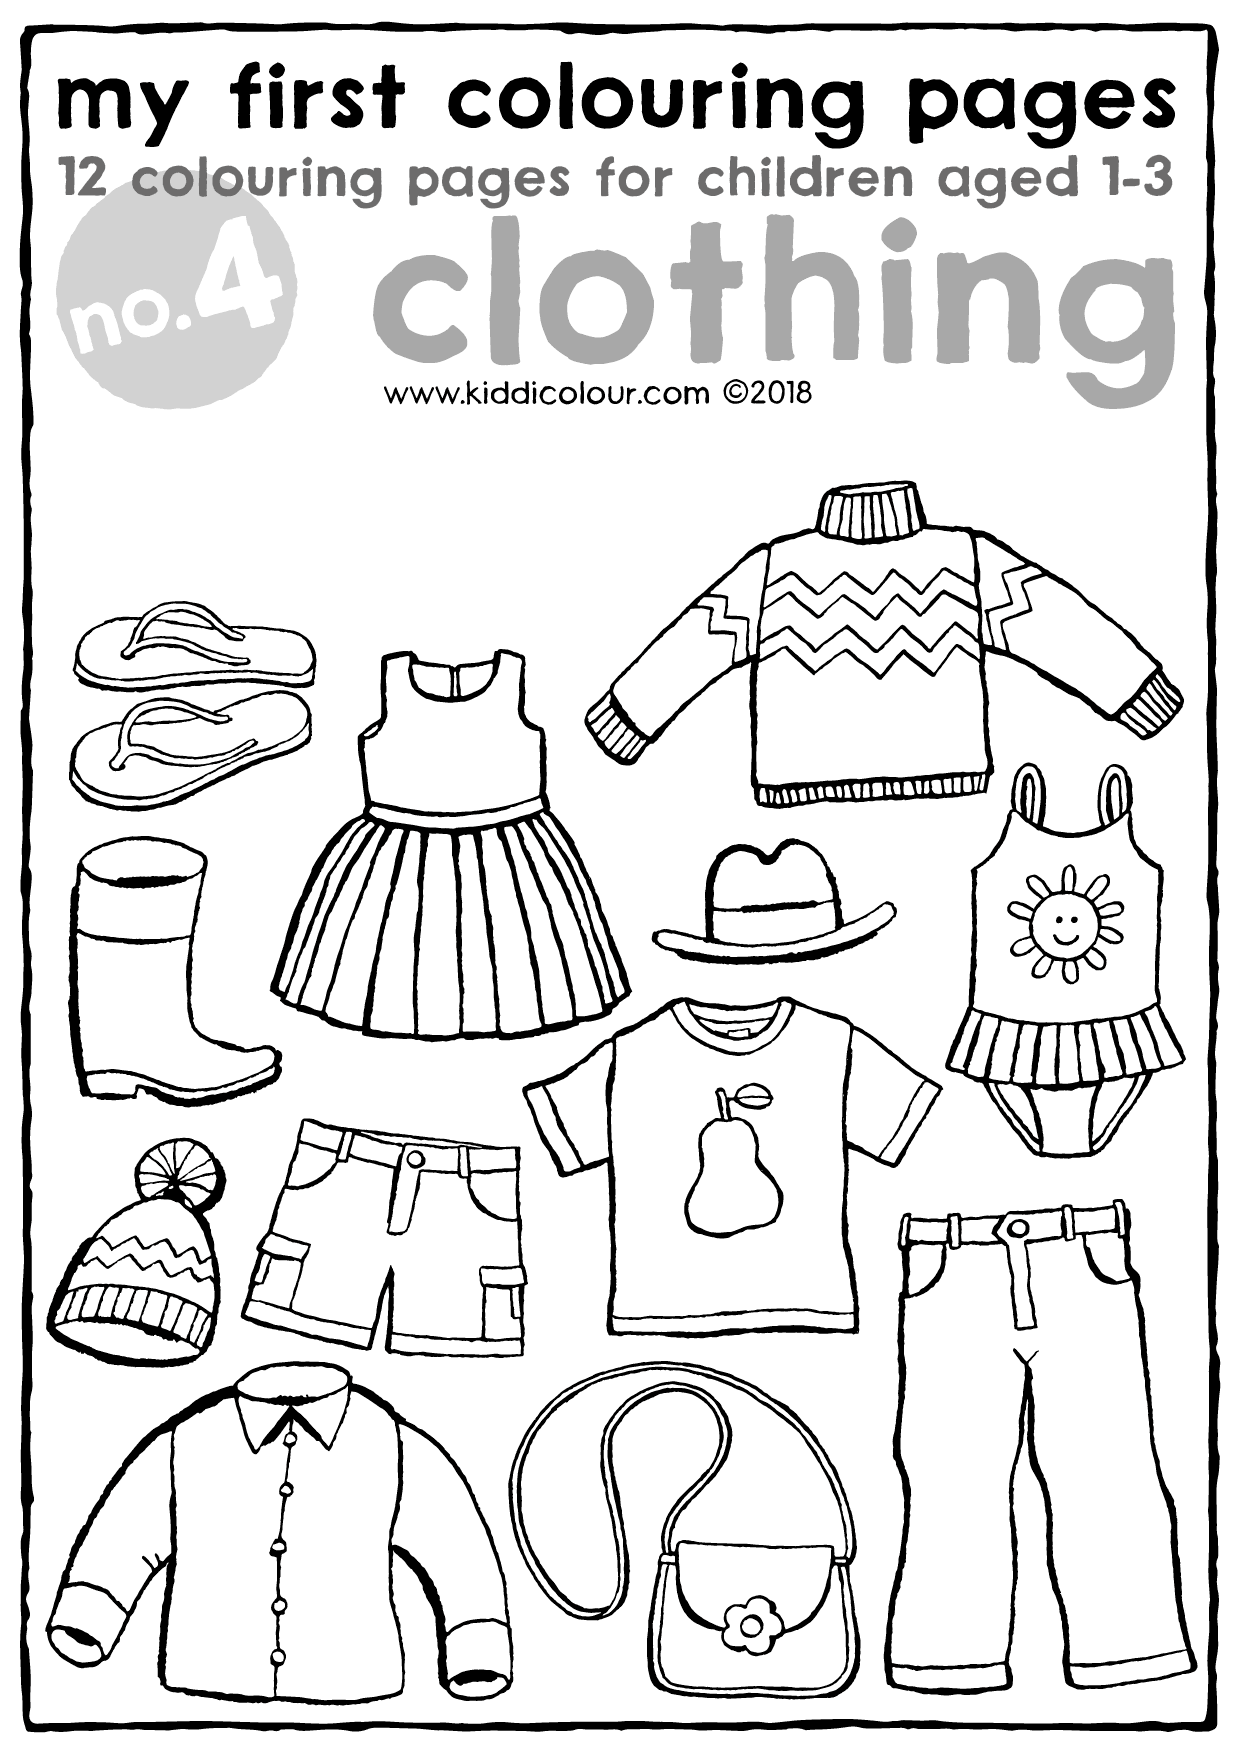 my first colouring pages no. 4: clothing